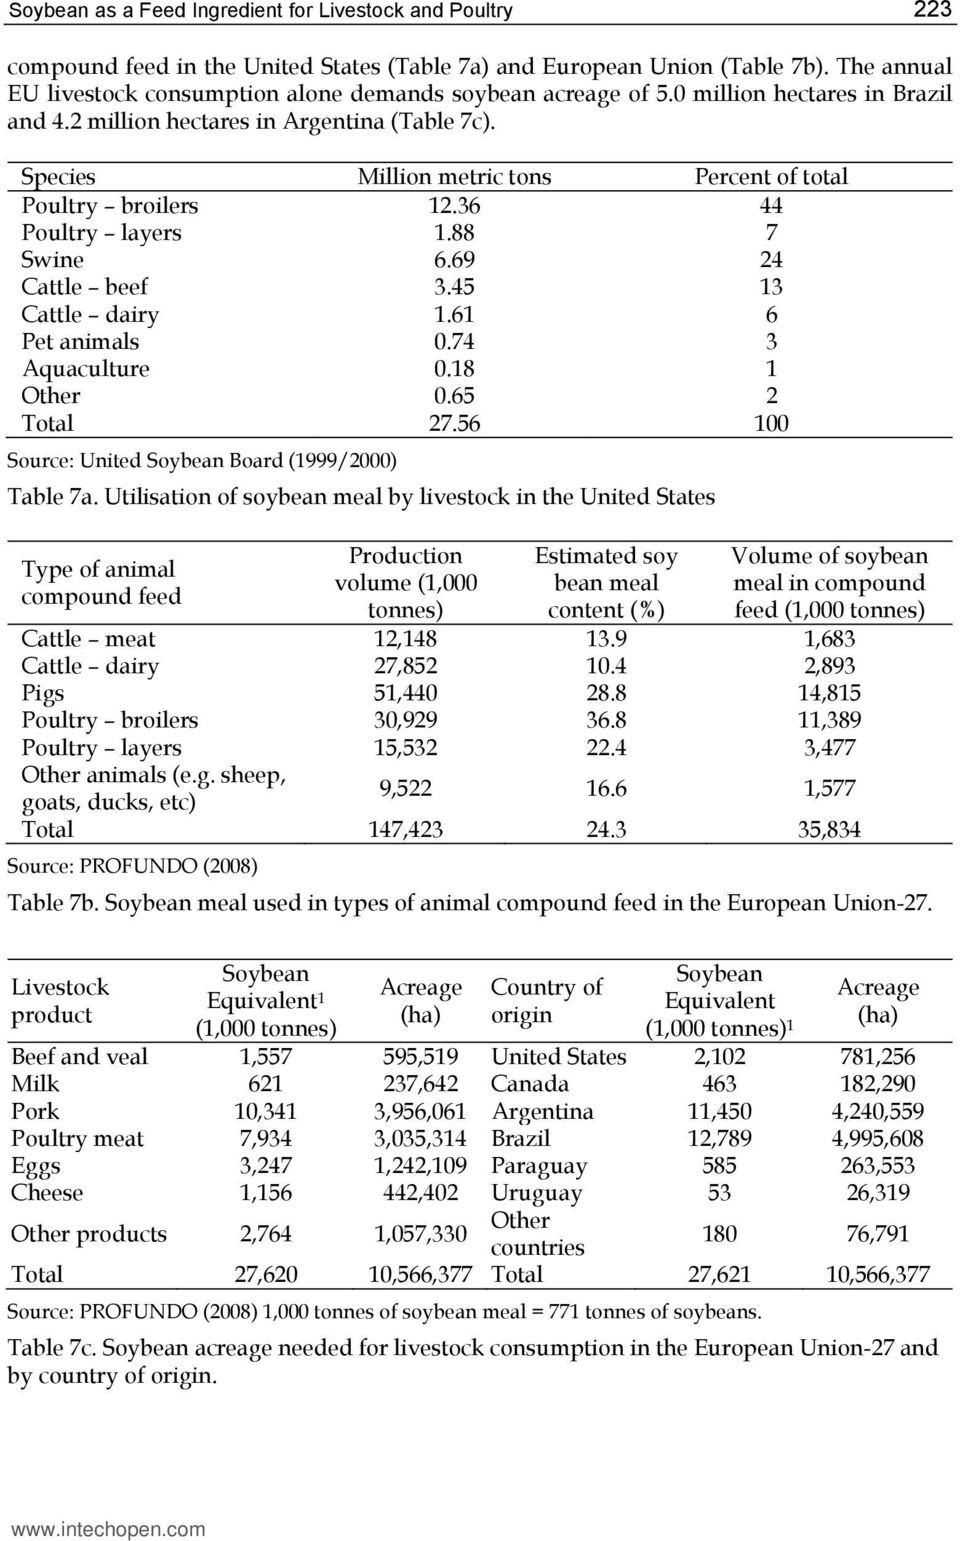 Soybean as a Feed Ingredient for Livestock and Poultry - PDF